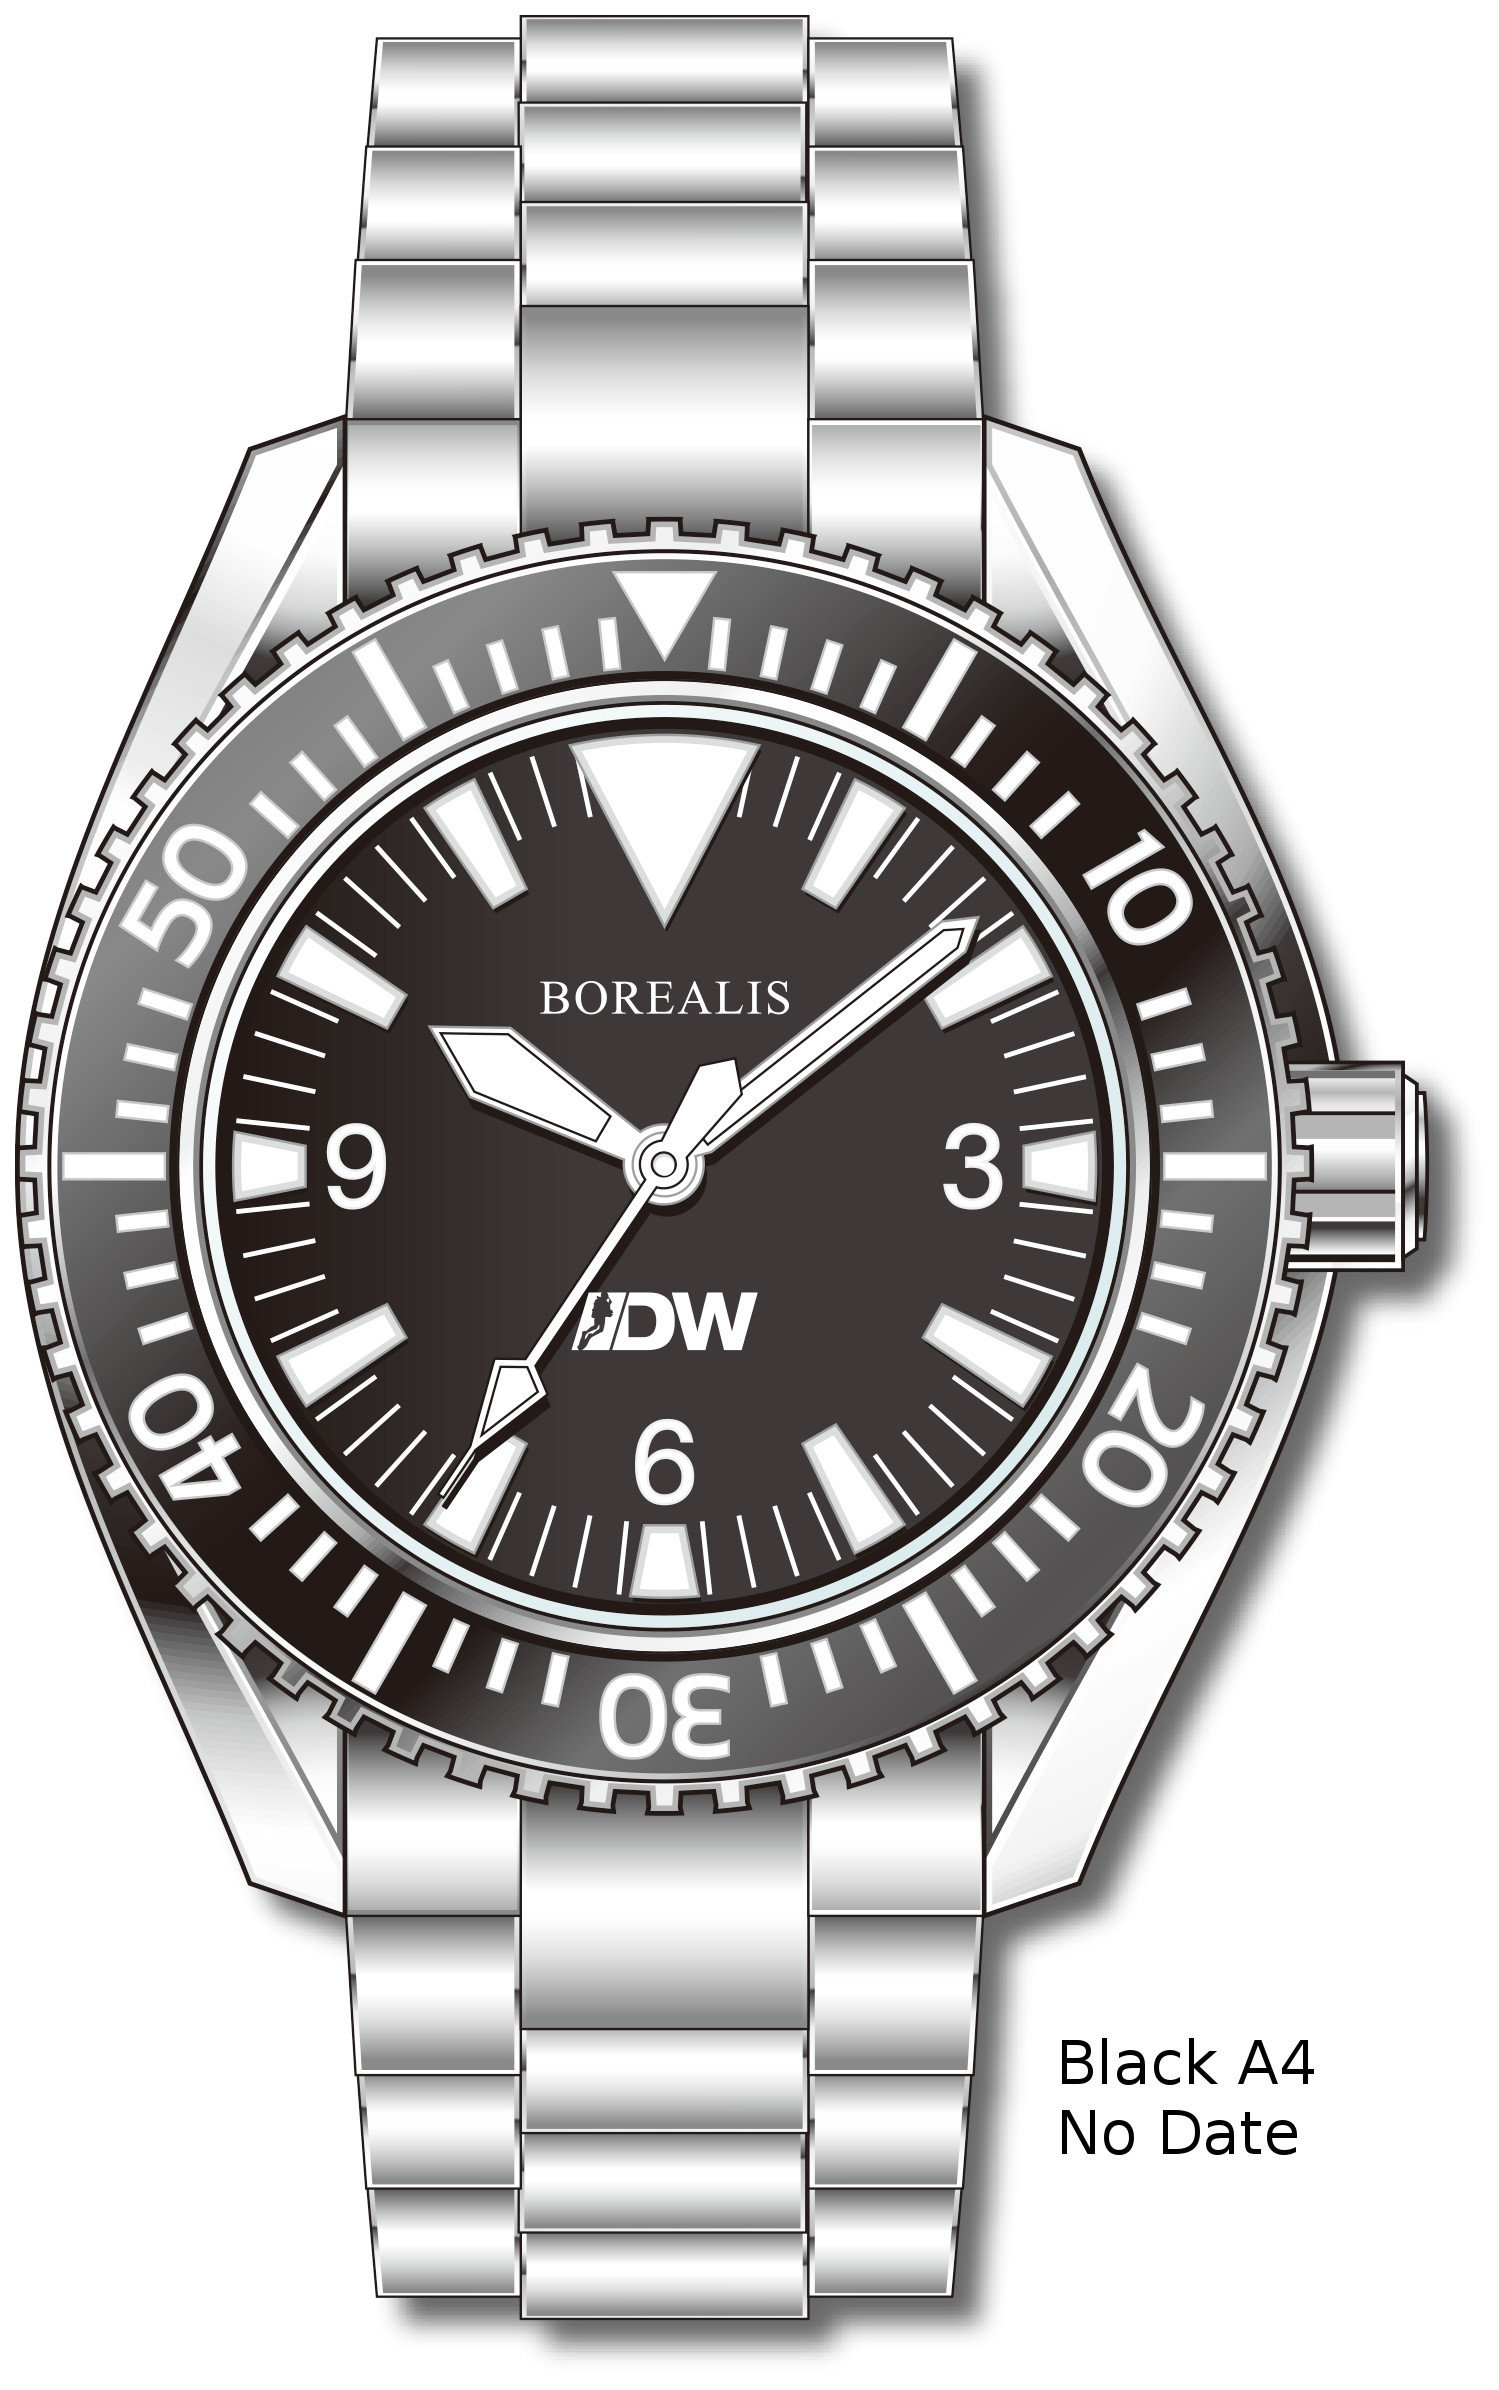 Pre-Order Borealis Estoril 300 for Diver's Watches Facebook Group Black Dial Big Triangle No Date Black A4 No Date EDWFBGBLACKA4NDT